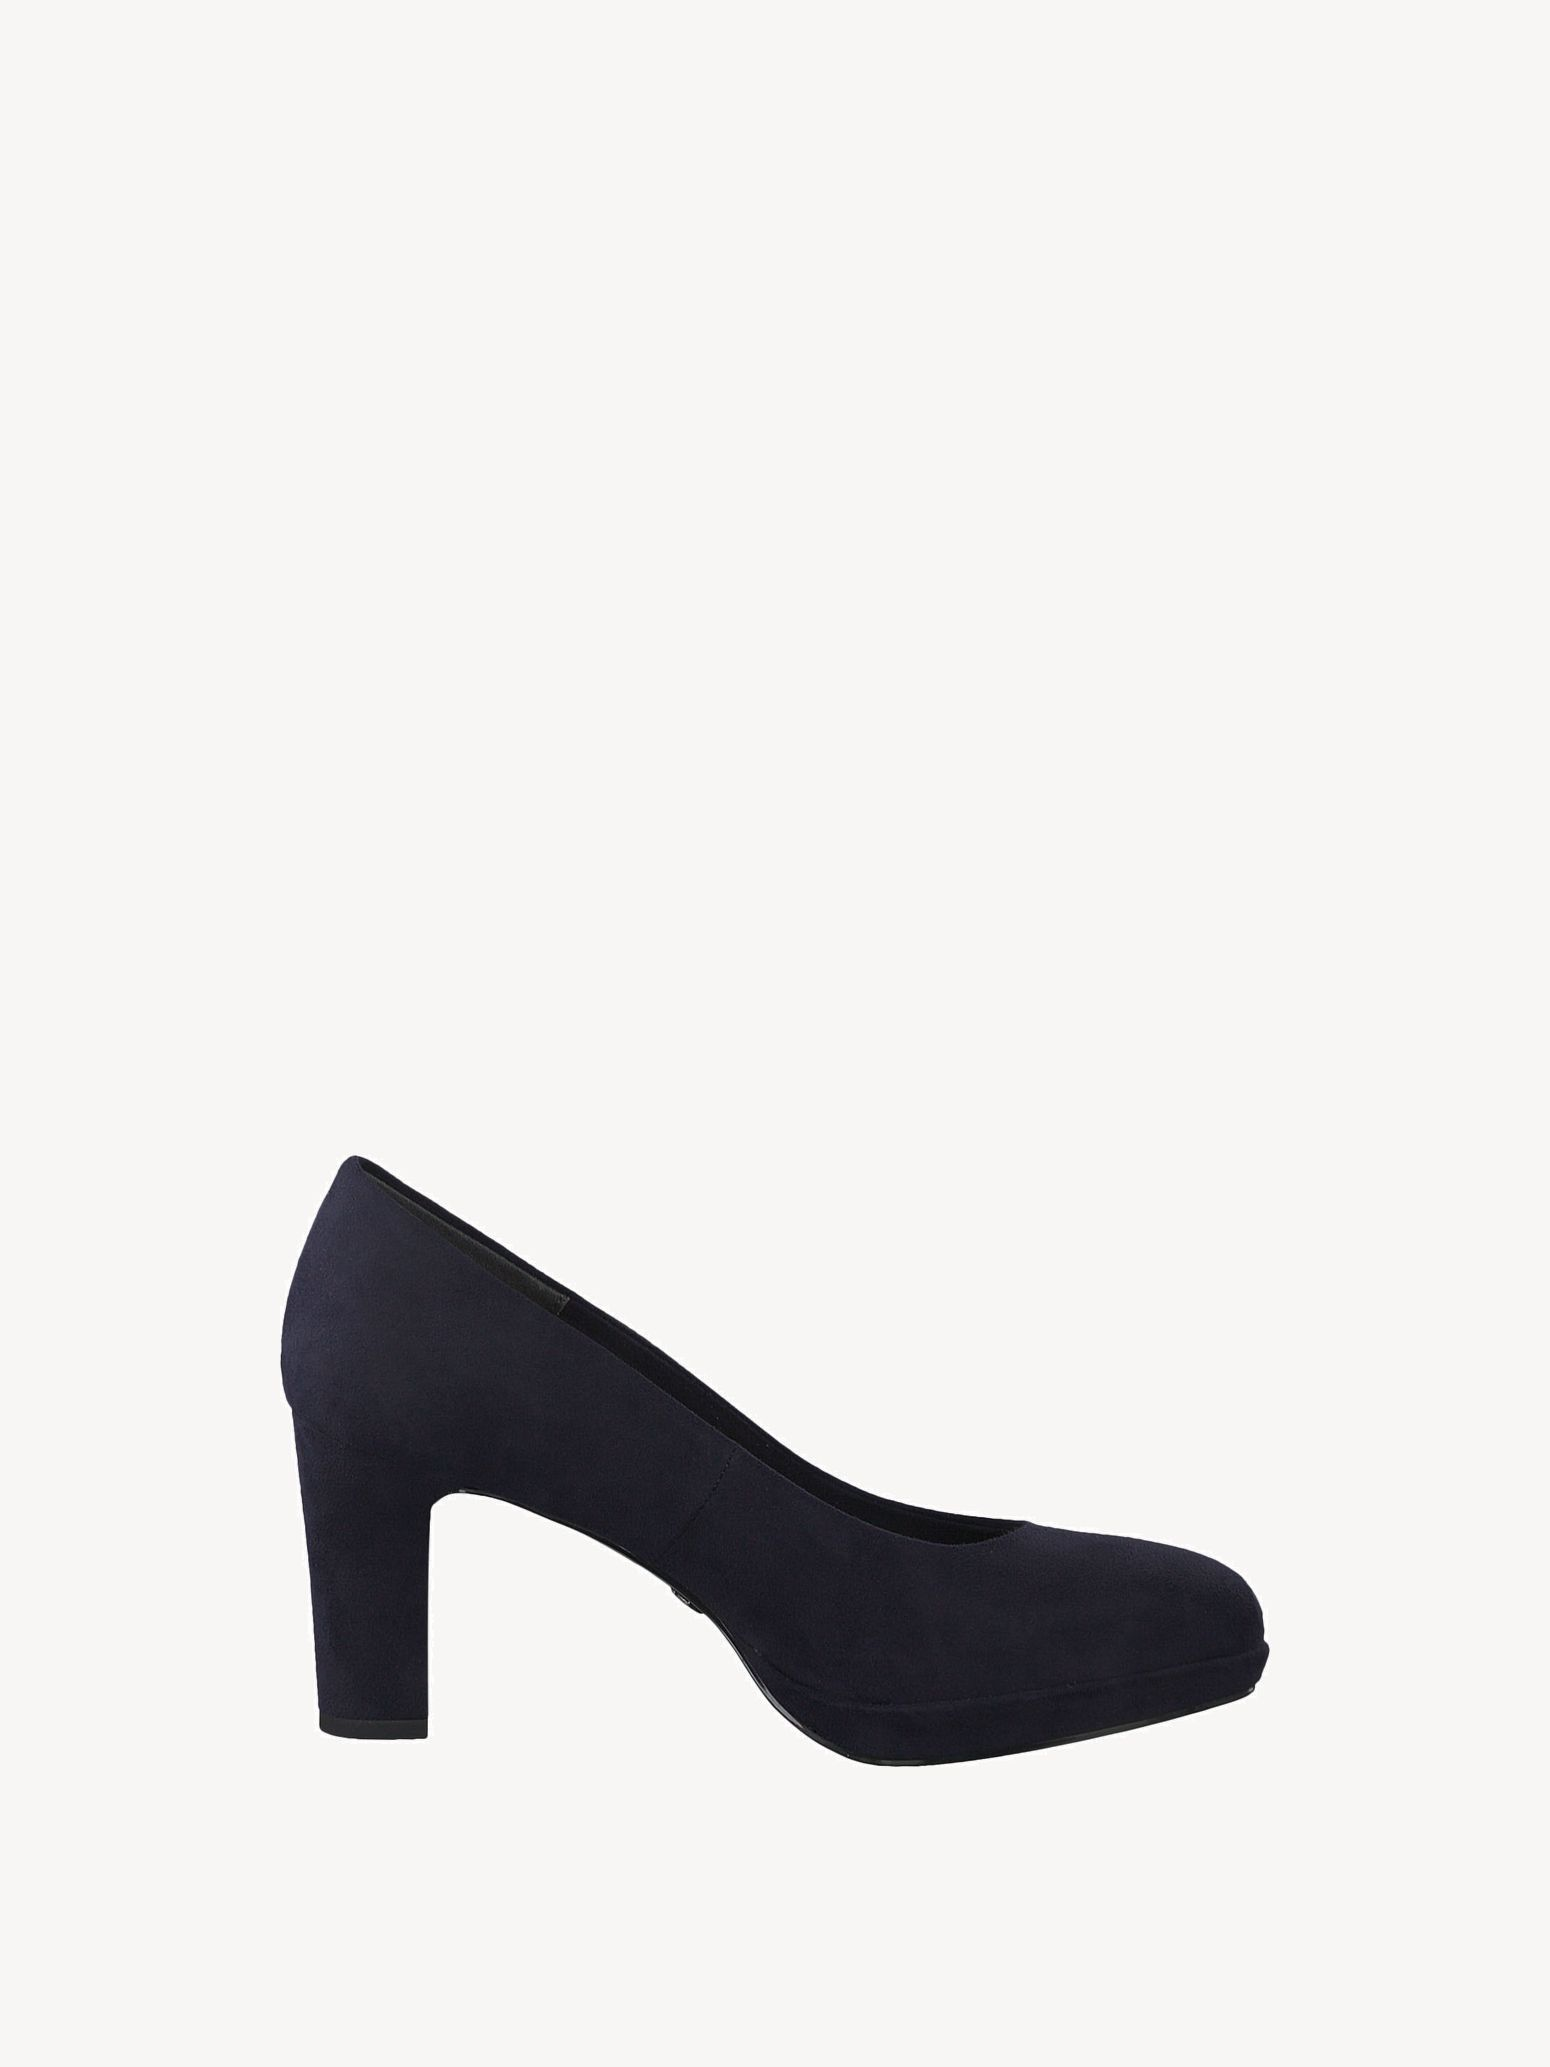 Pumps - blau, NAVY, hi-res